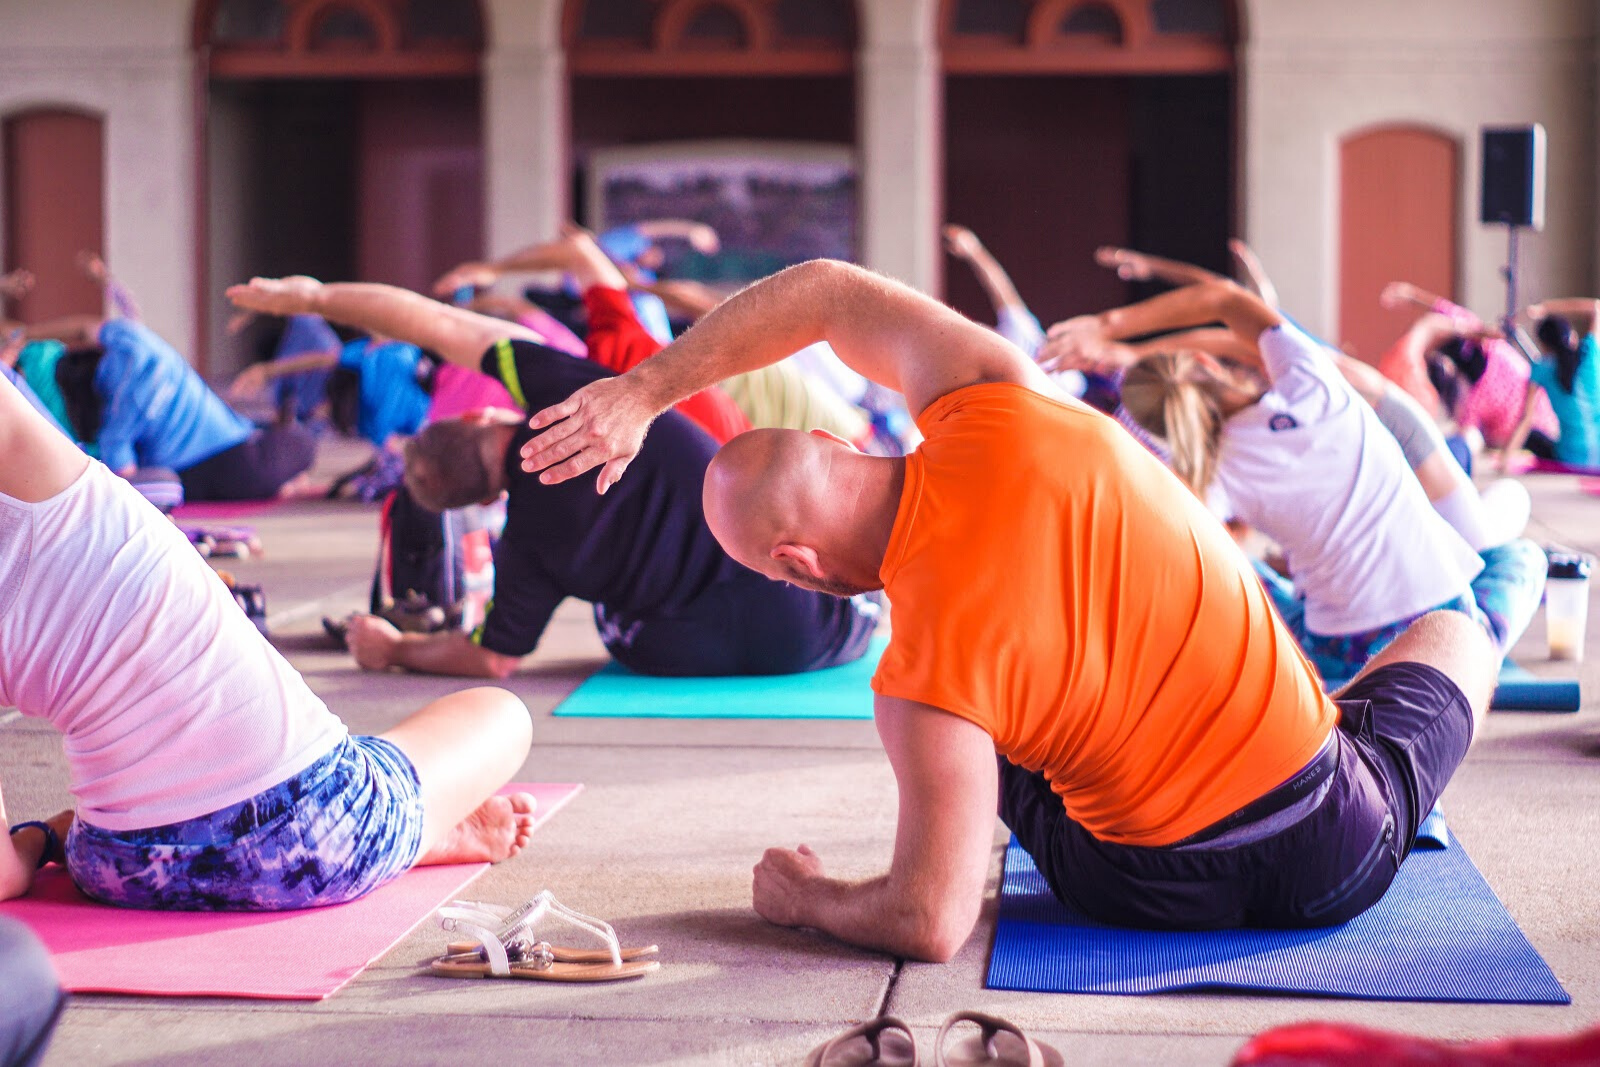 Yoga Class | Your First Yoga Class? Here Are 9 Tips To Help You Be Ready